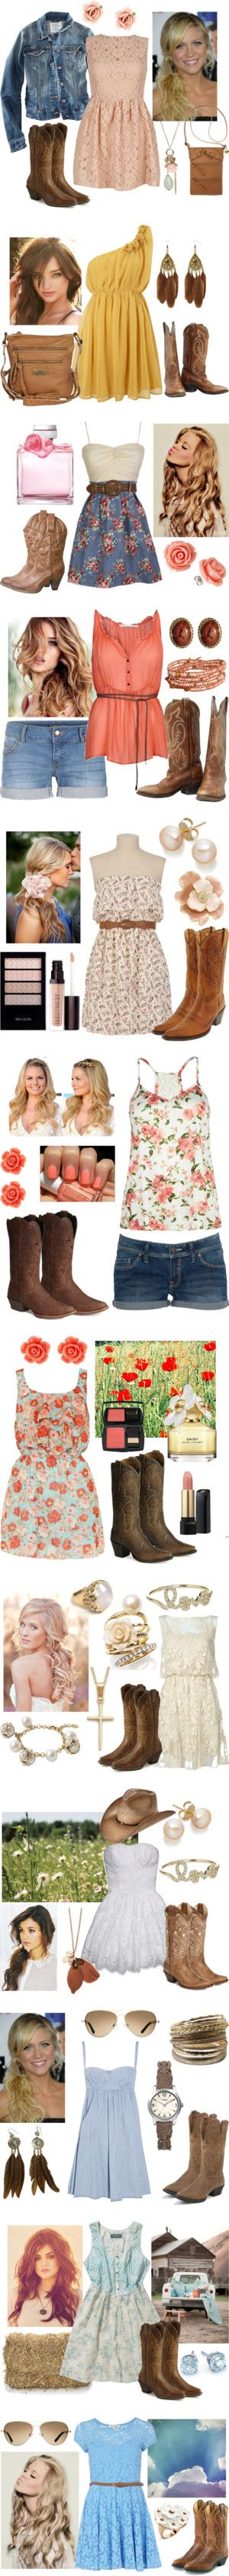 Tons of ideas for my boots!!!! <3